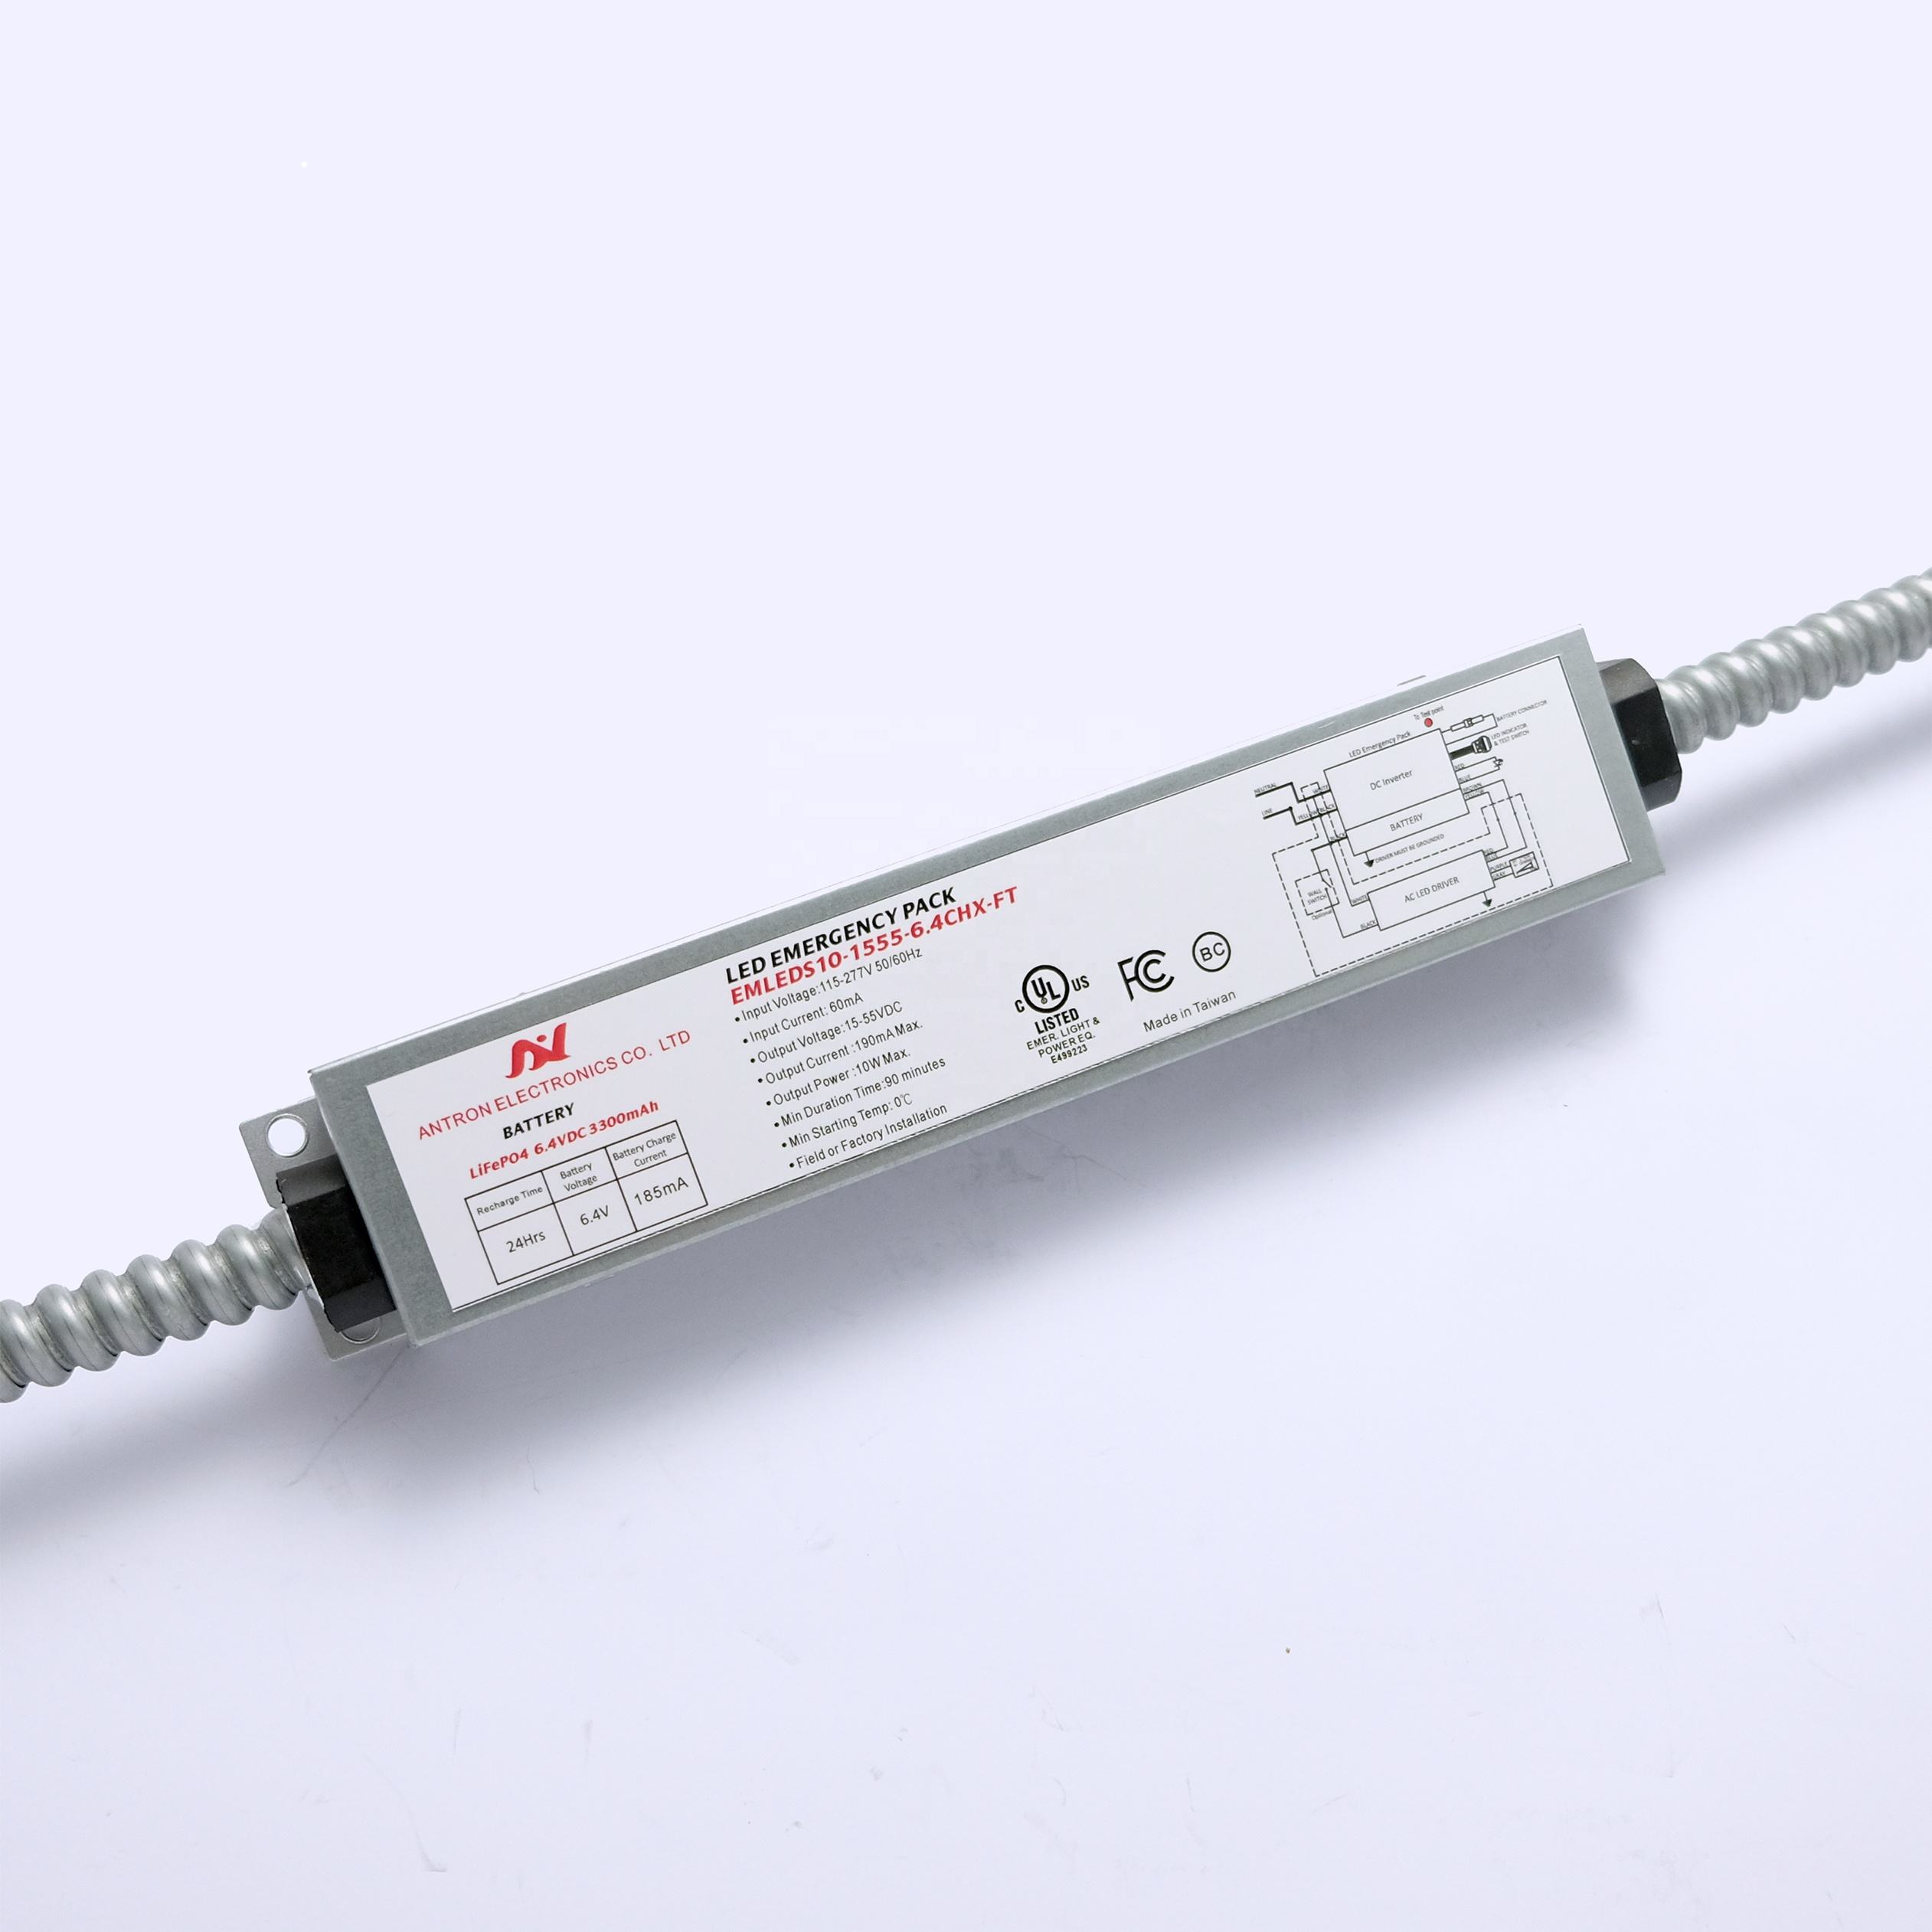 Taiwan Quality 10W LED Bohlam Emergency Driver